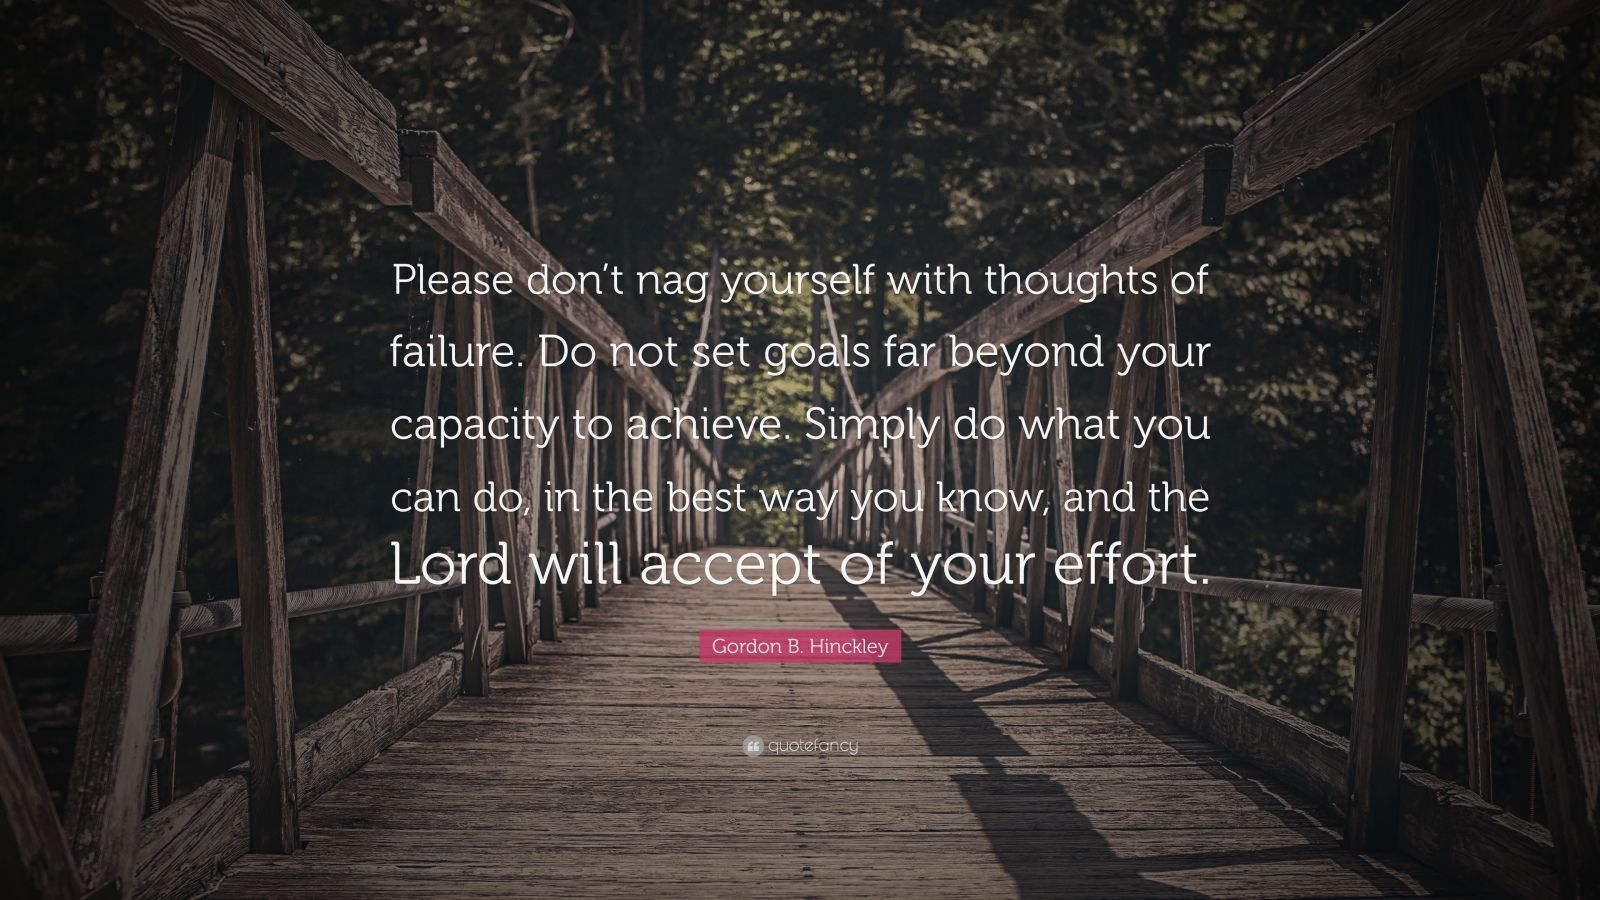 "Gordon B. Hinckley Quote: ""Please don't nag yourself with thoughts of failure. Do not set goals far beyond your capacity to achieve. Simply do what you can do, in the best way you know, and the Lord will accept of your effort."""